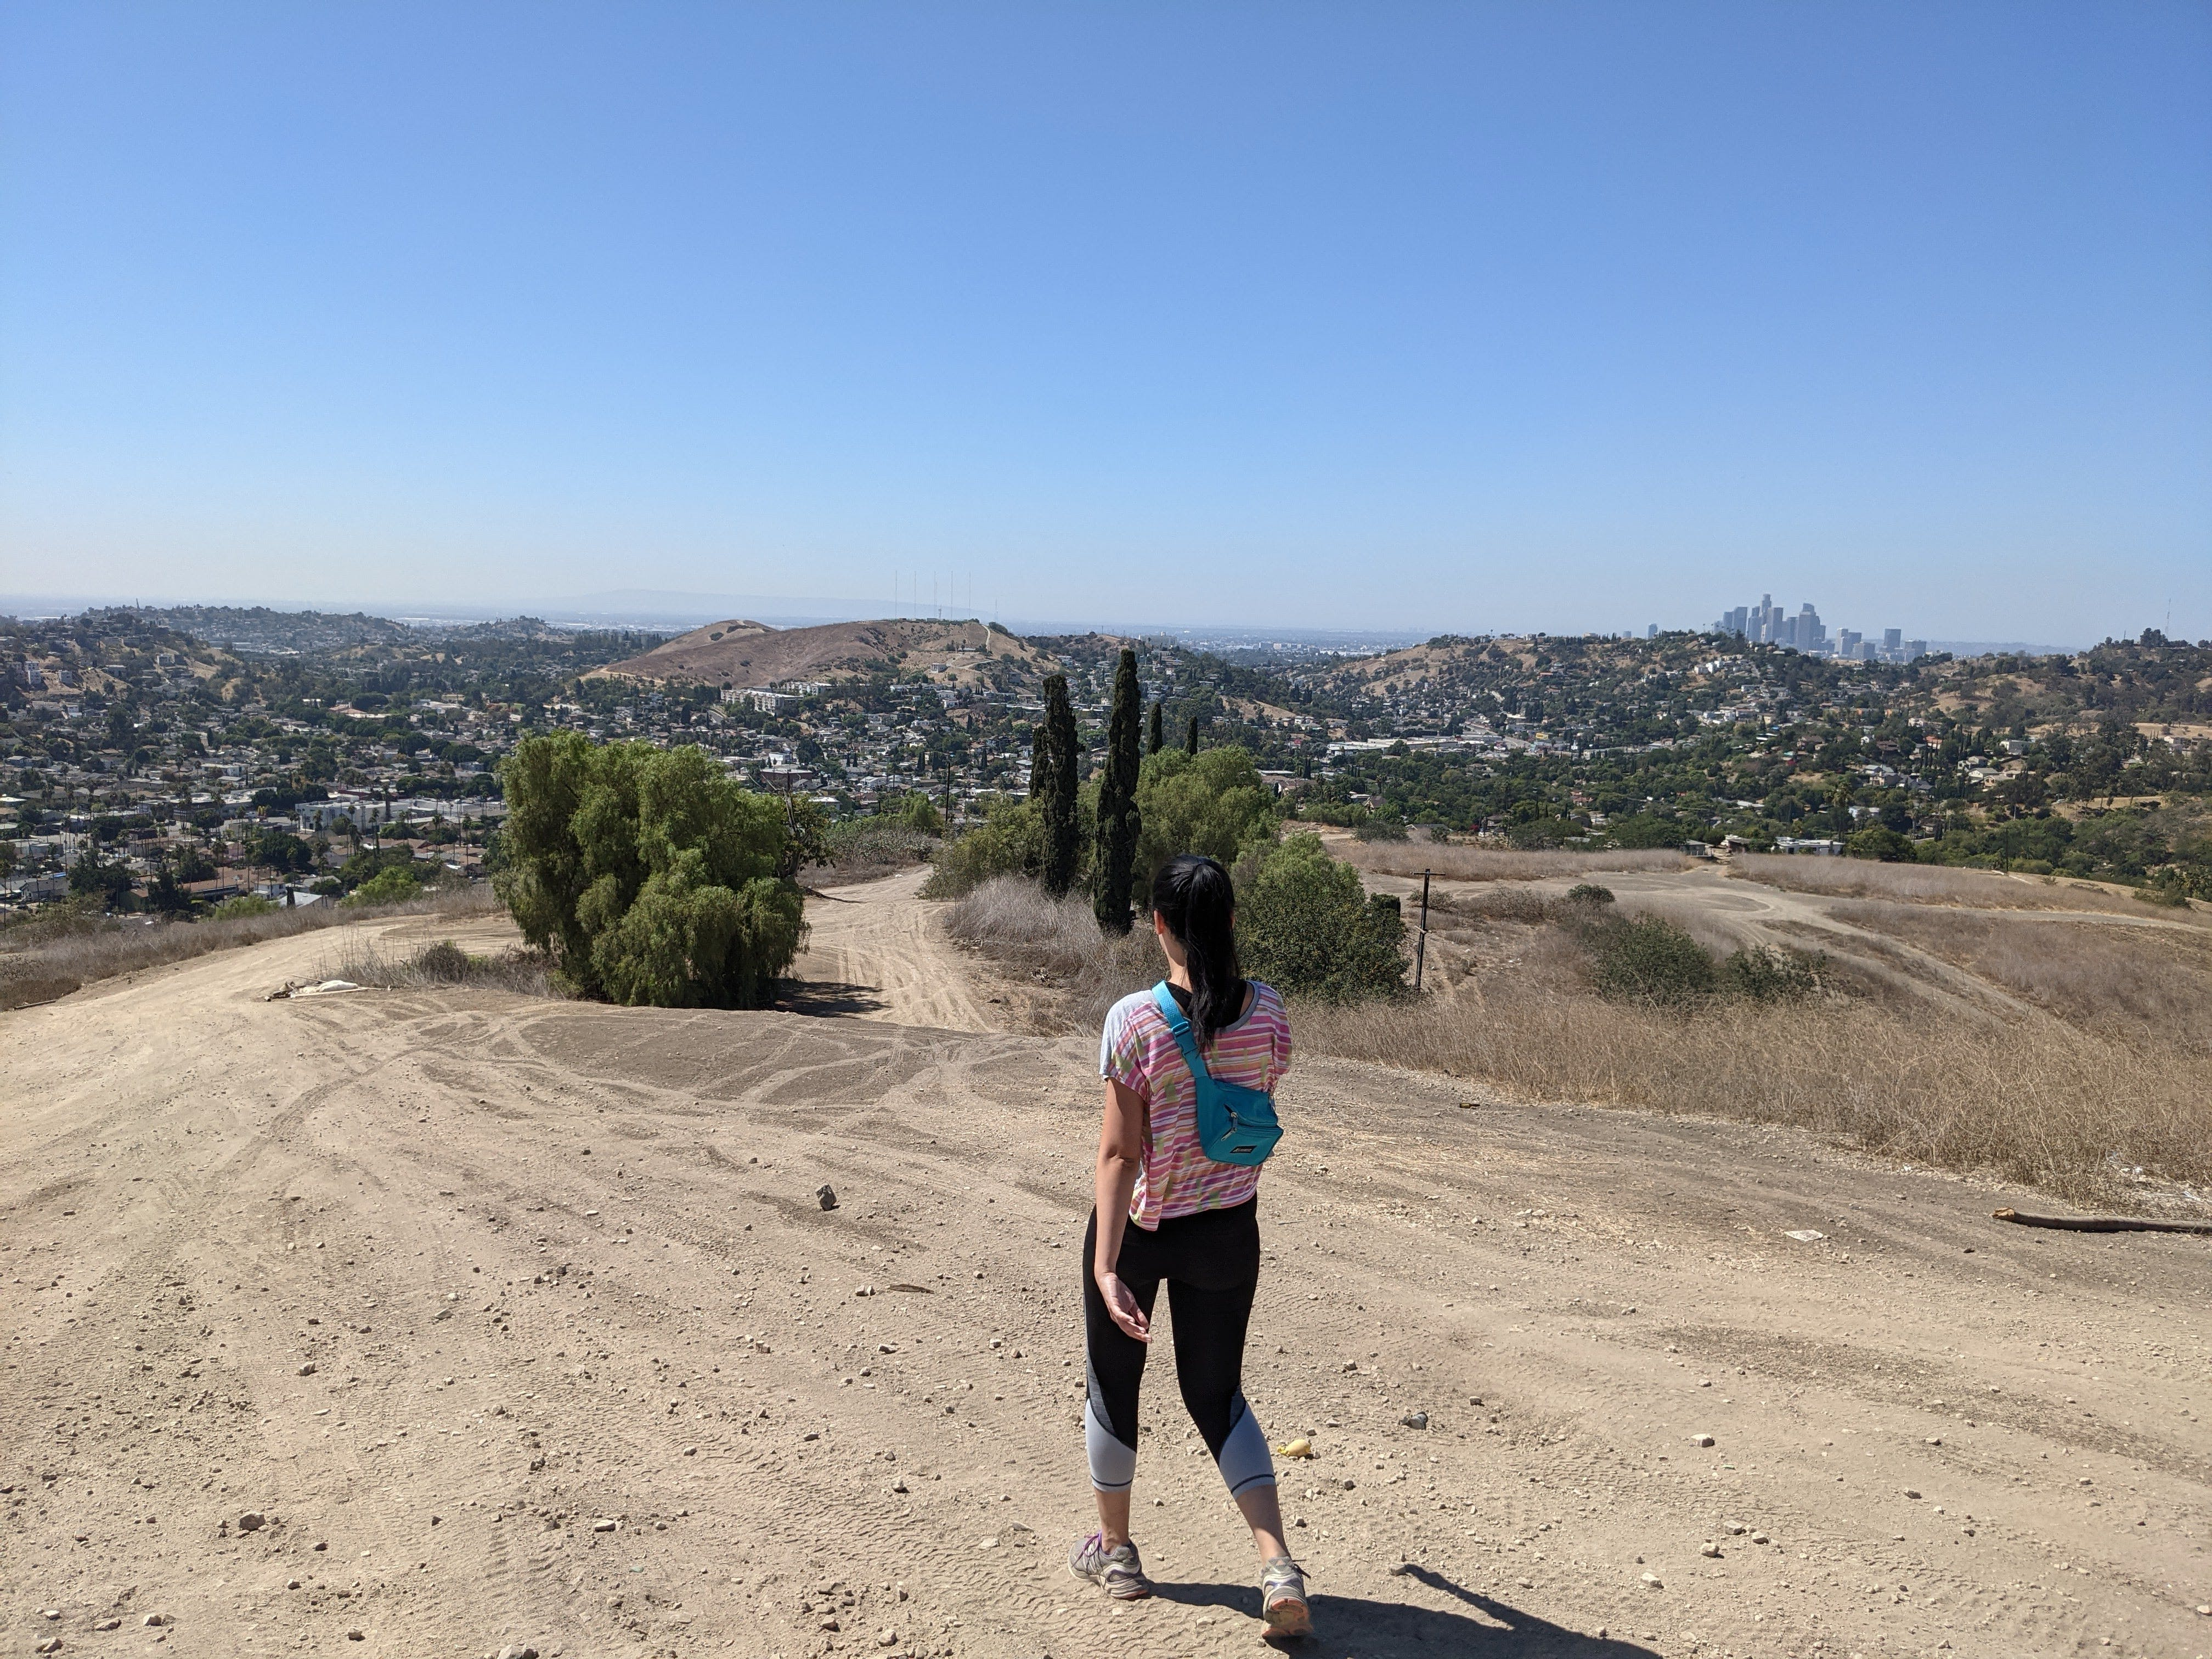 Hiker going down a trail at Elephant Hill Open Space in Los Angeles